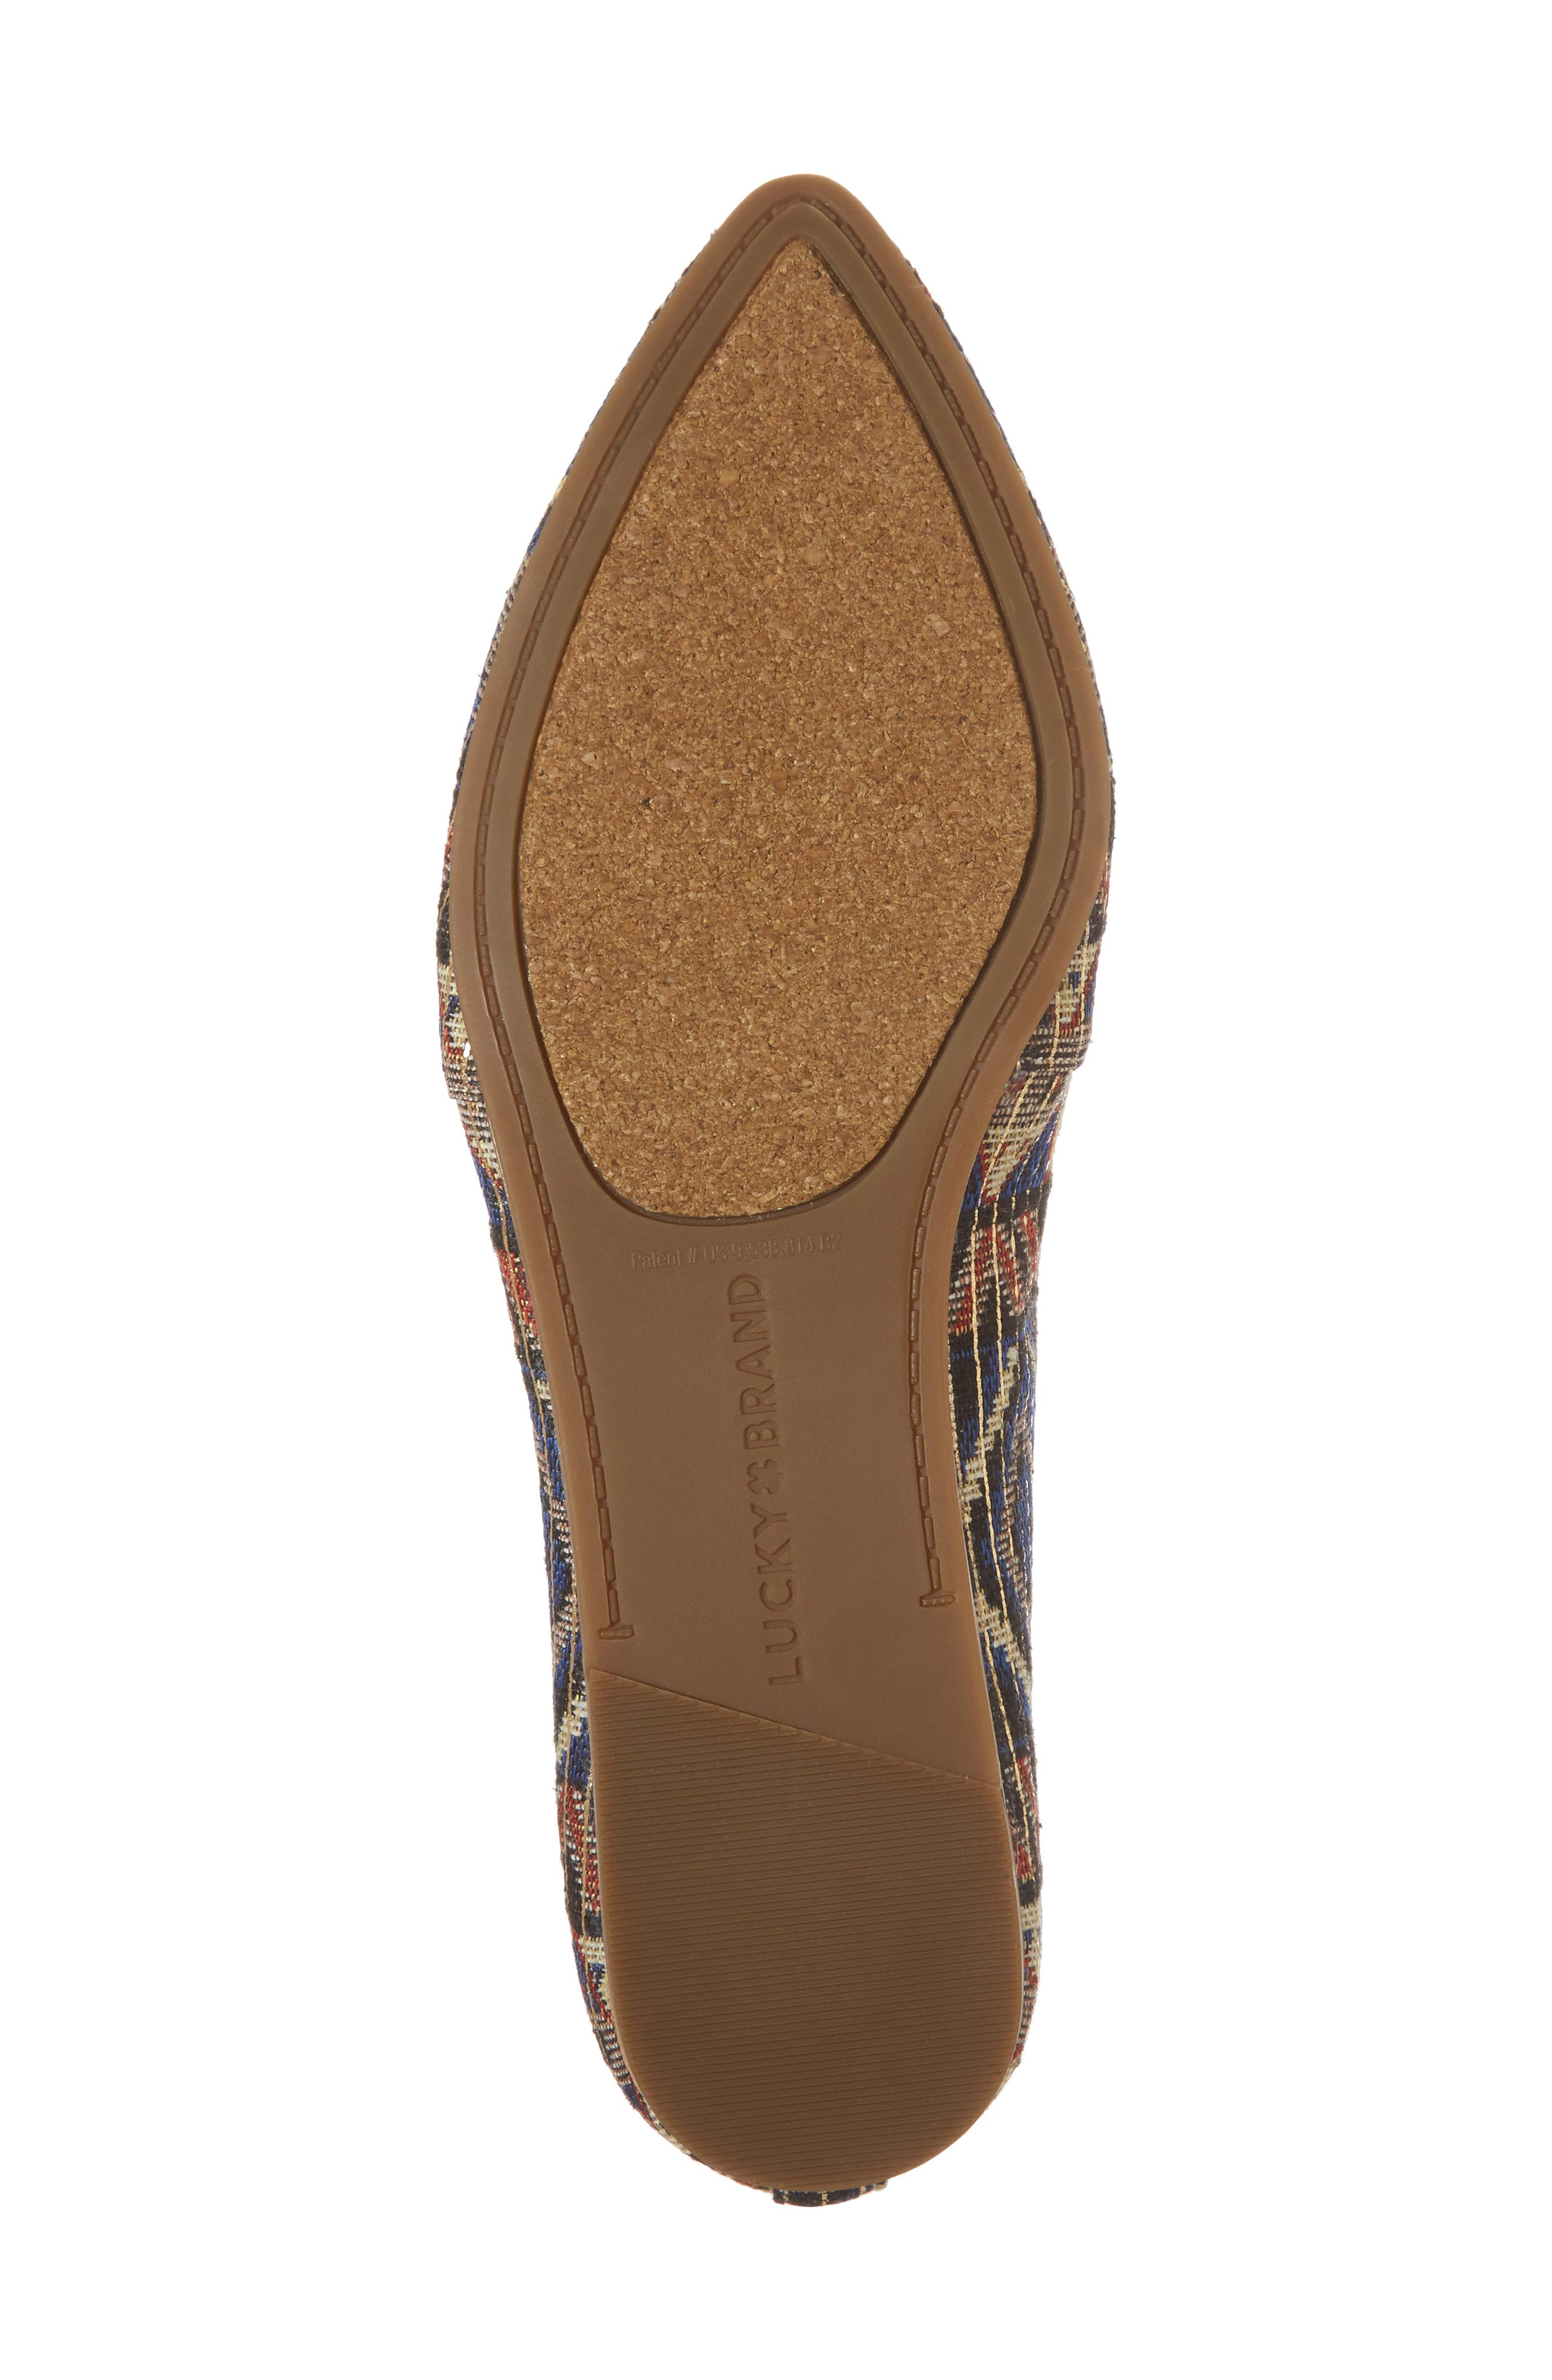 Beechmer Pointy Toe Flat,                             Alternate thumbnail 6, color,                             Picante Leather